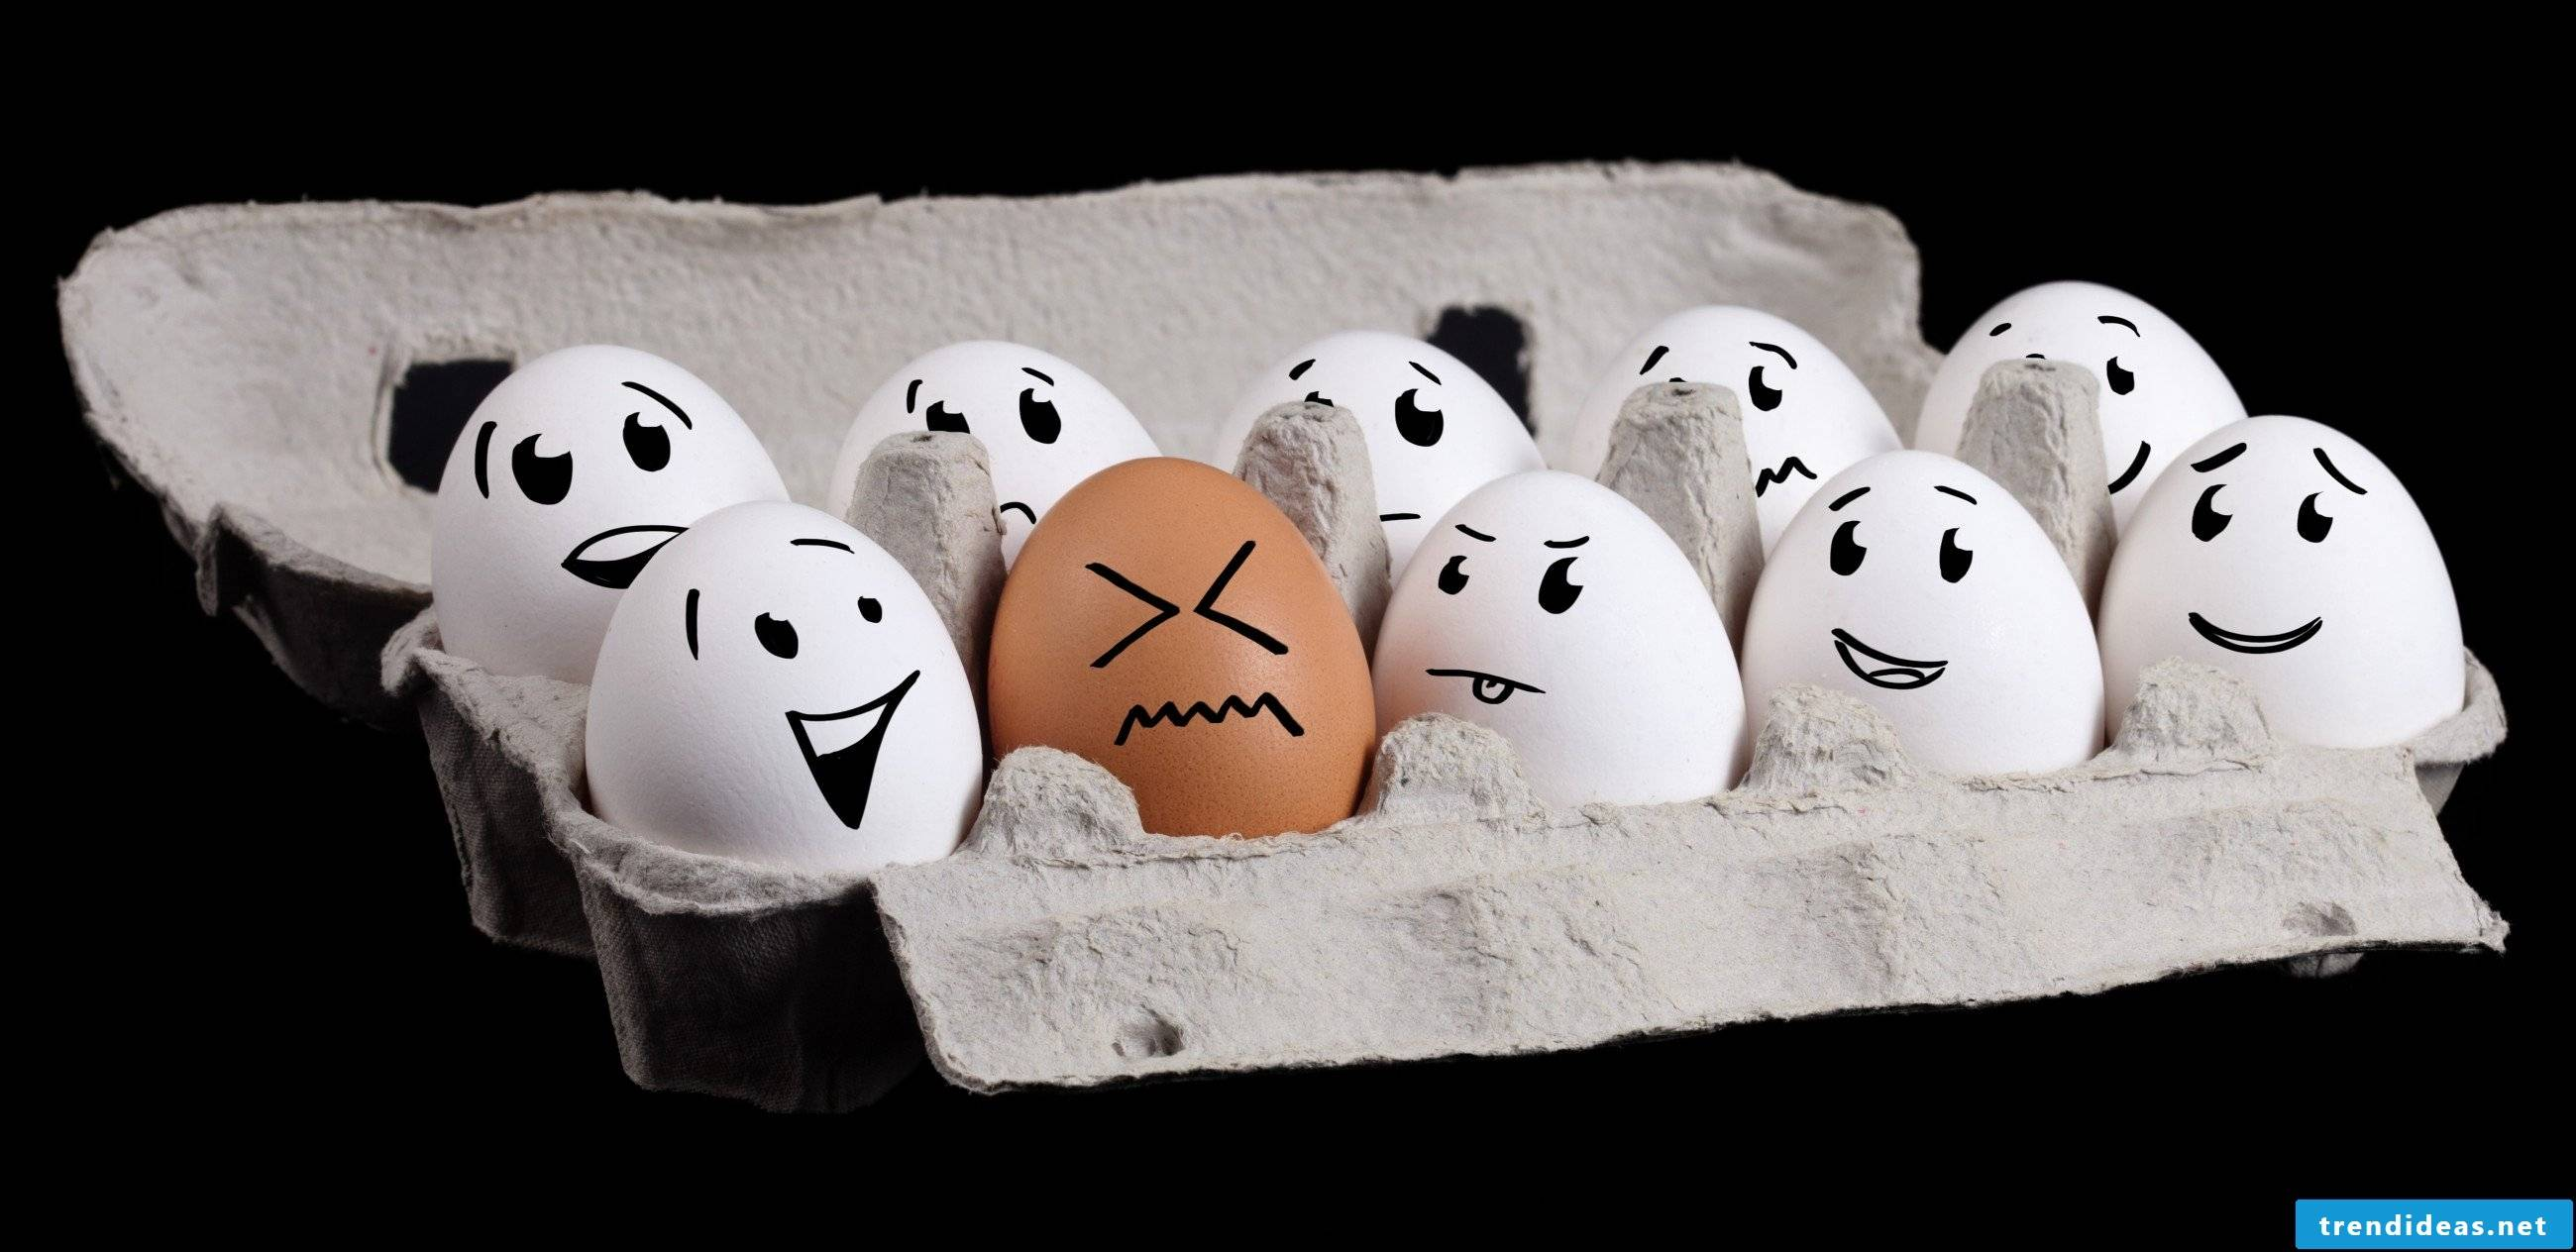 Do not miss the opportunity that Easter offers you and collect some stunning crafting ideas for funny egg faces.